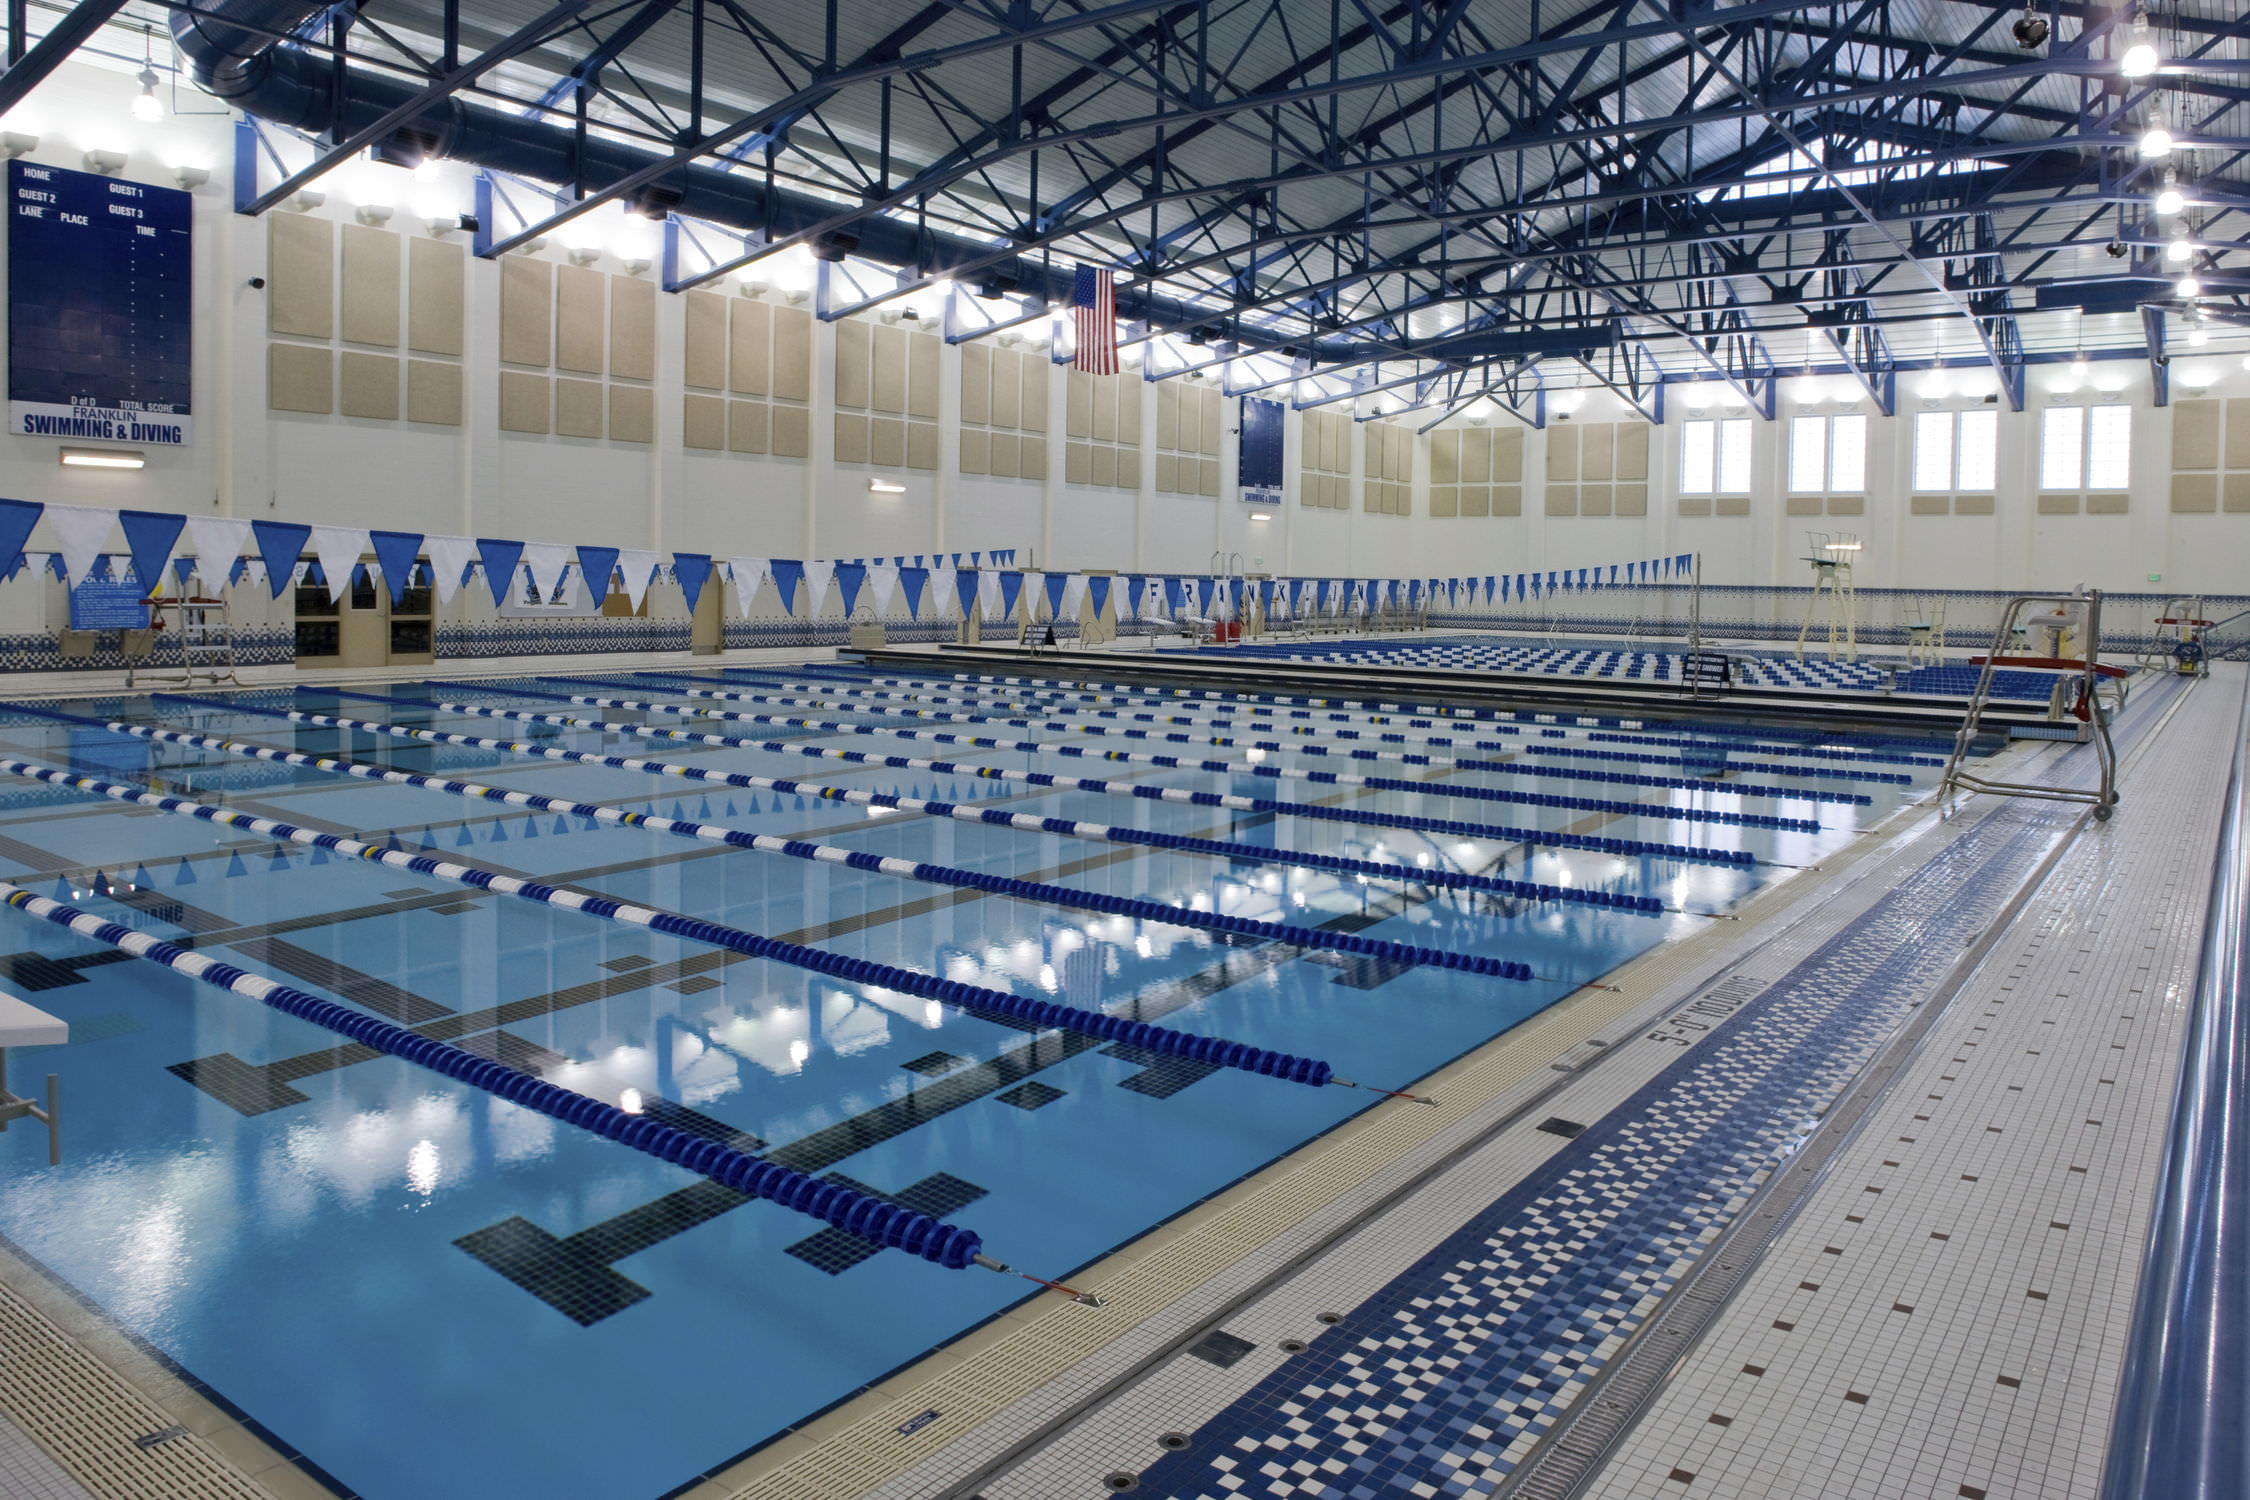 Indoor School Swimming Pool concrete competition pool / public / indoor - franklin community